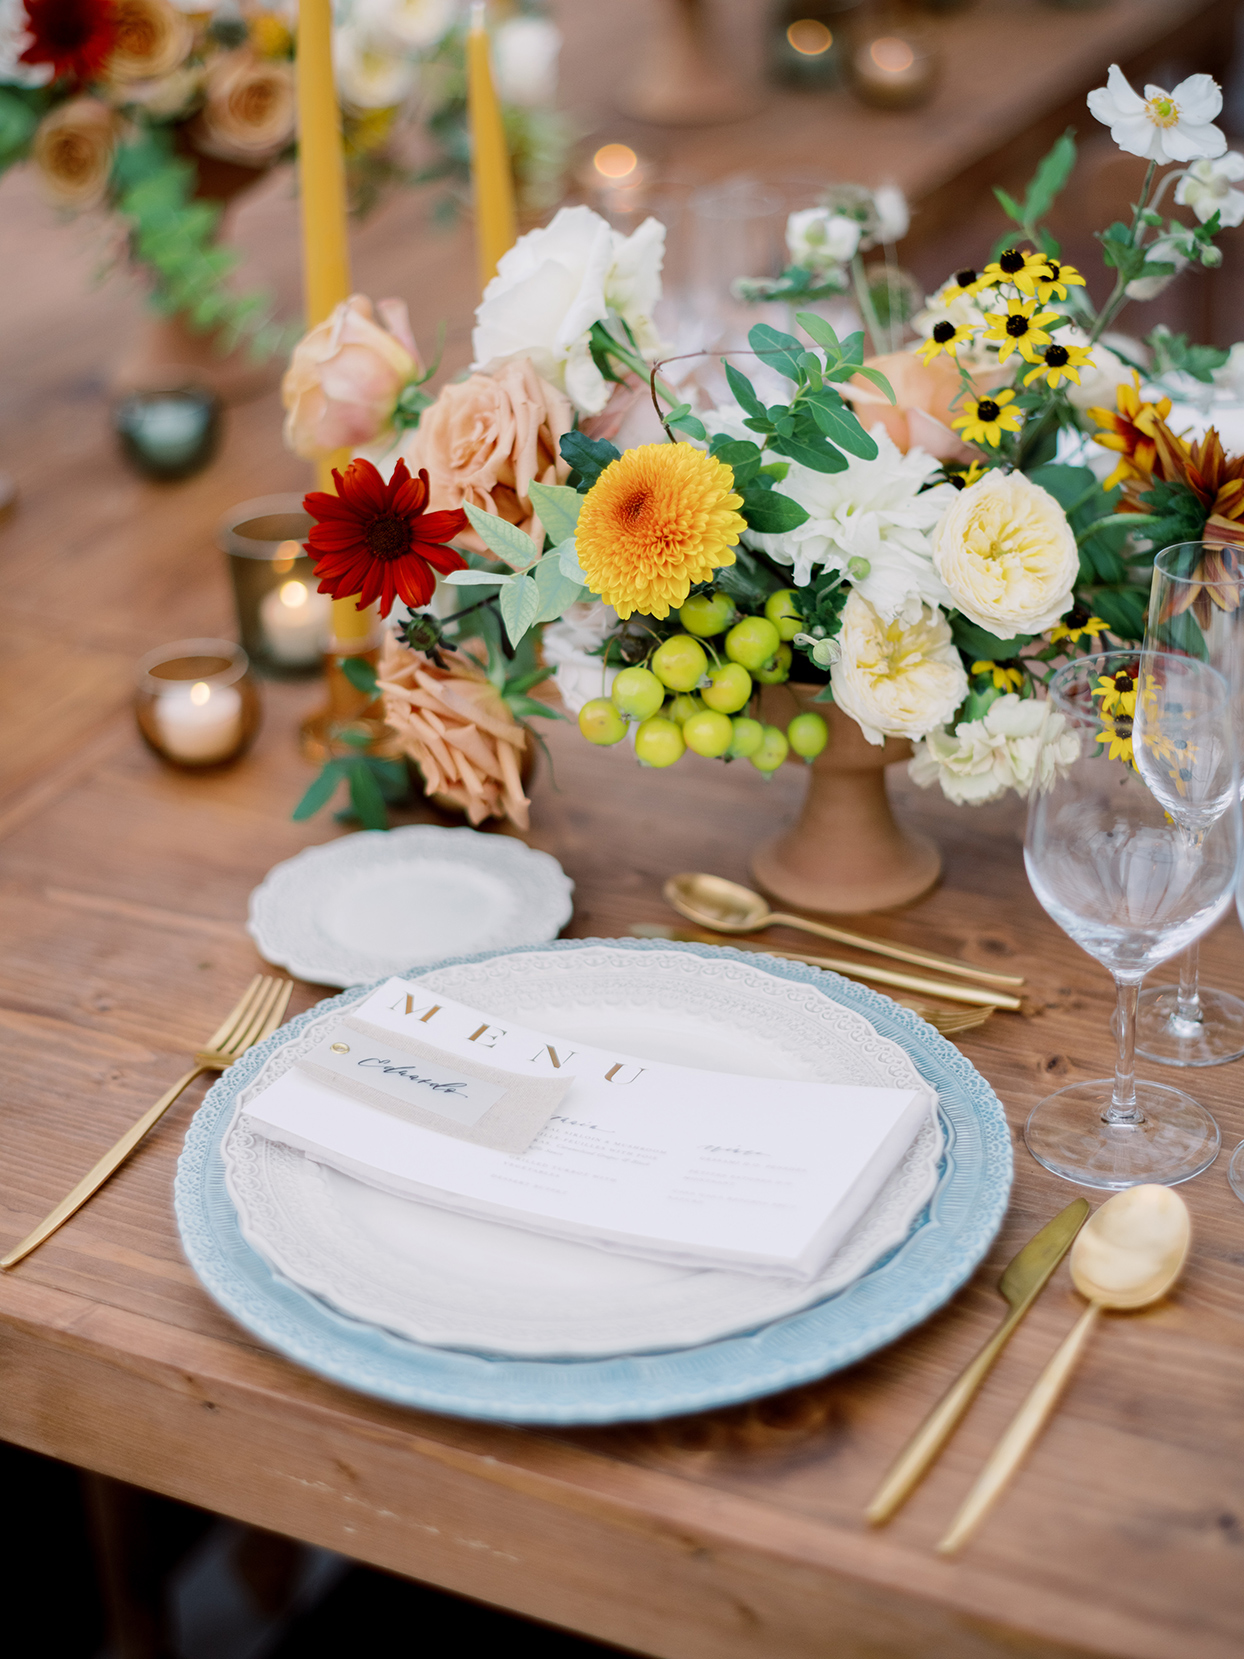 alyssa macia wedding reception ornate place setting and flower centerpiece